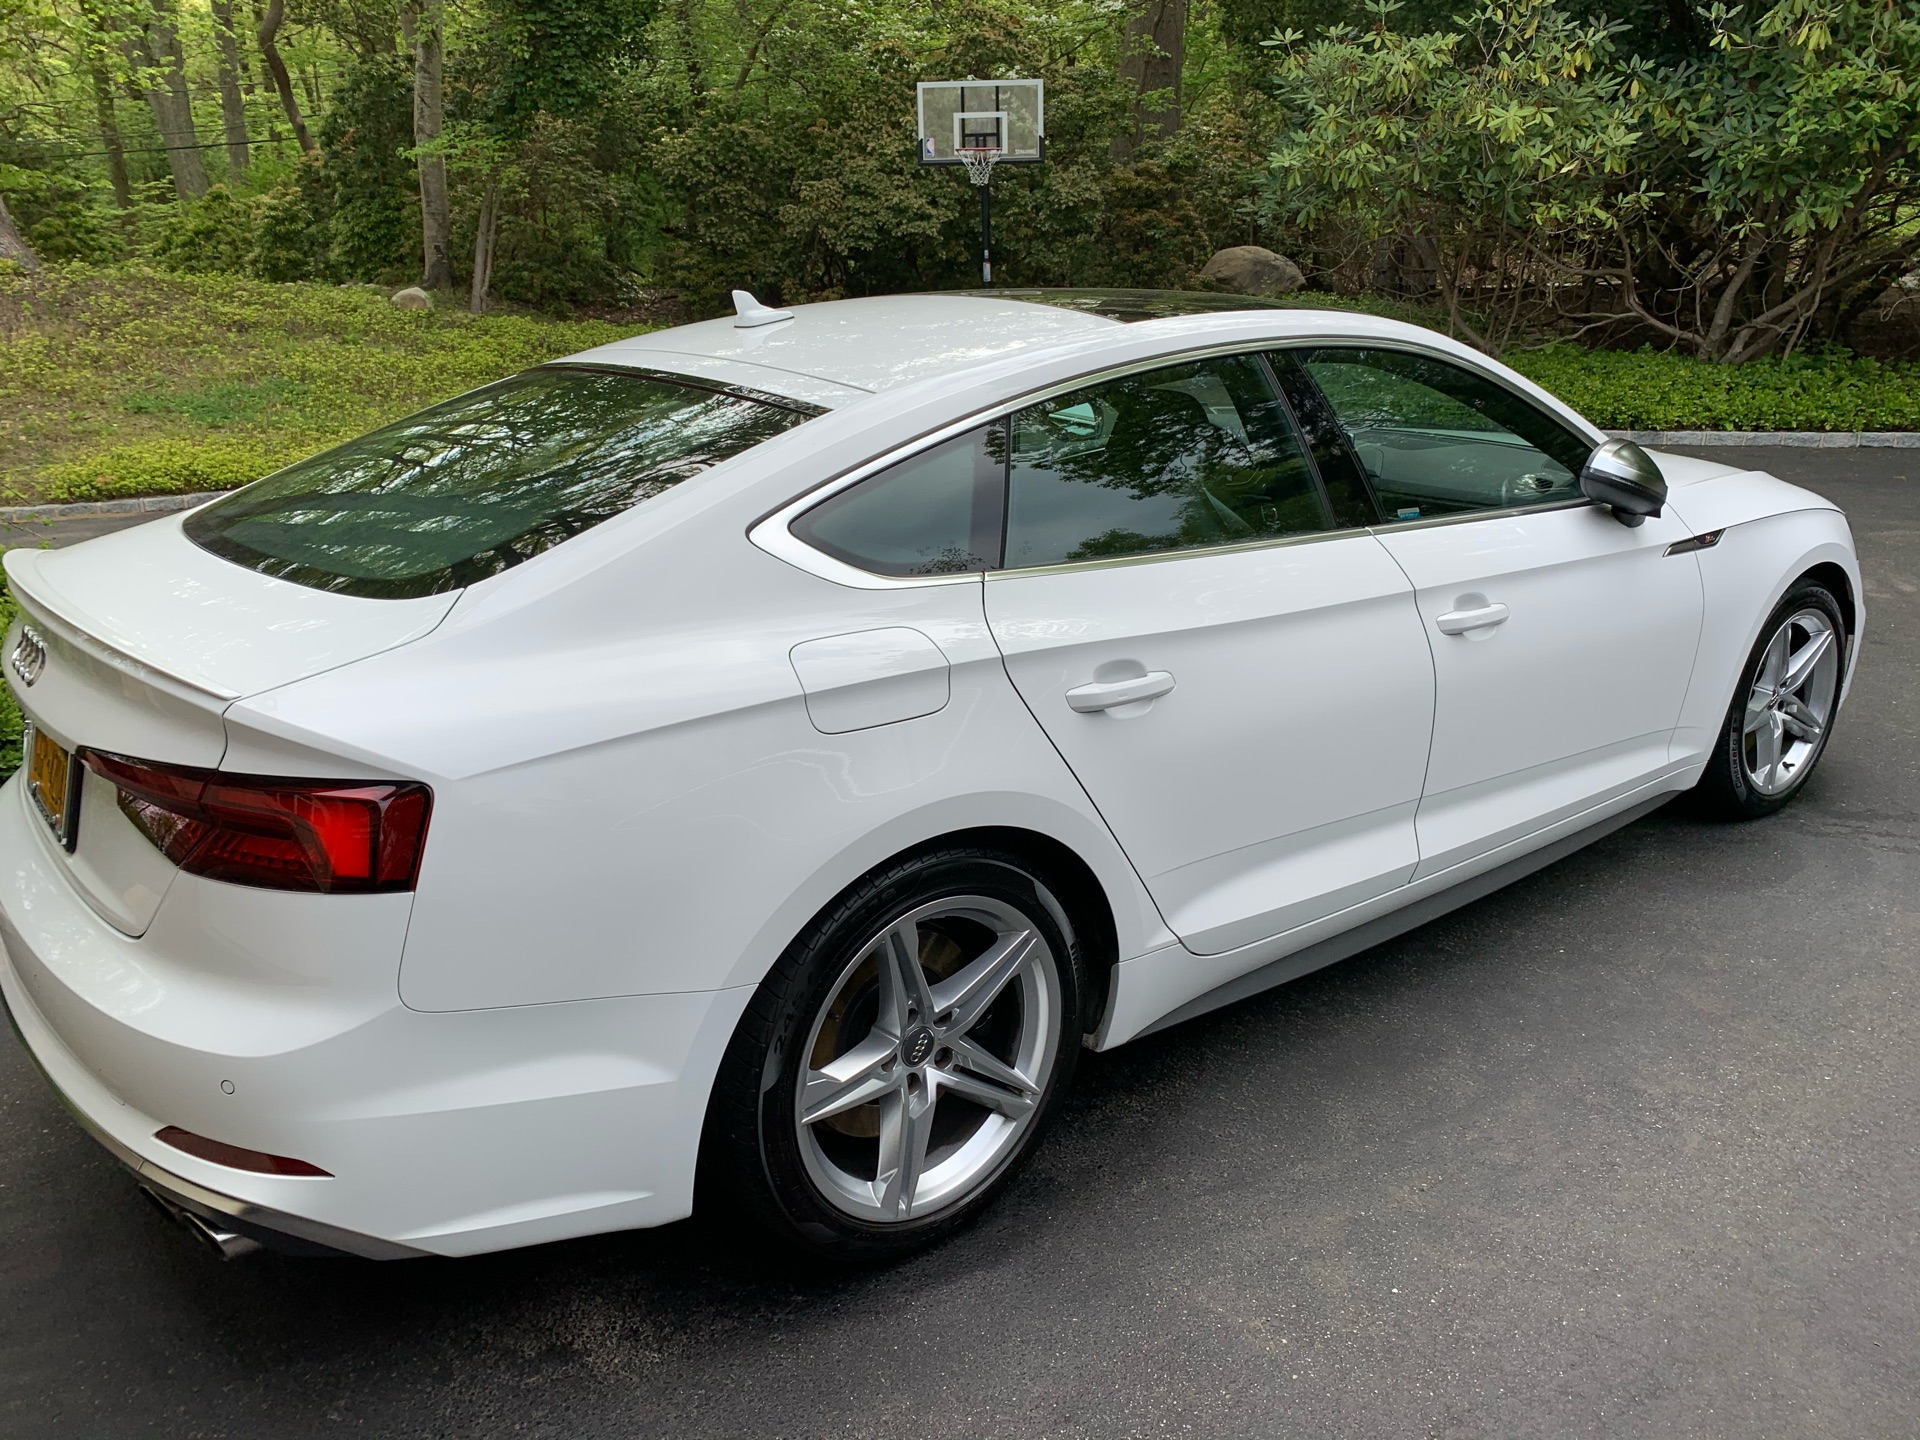 Audi S5 Sportback 2019 Lease Deals in Mount Sinai, New ...